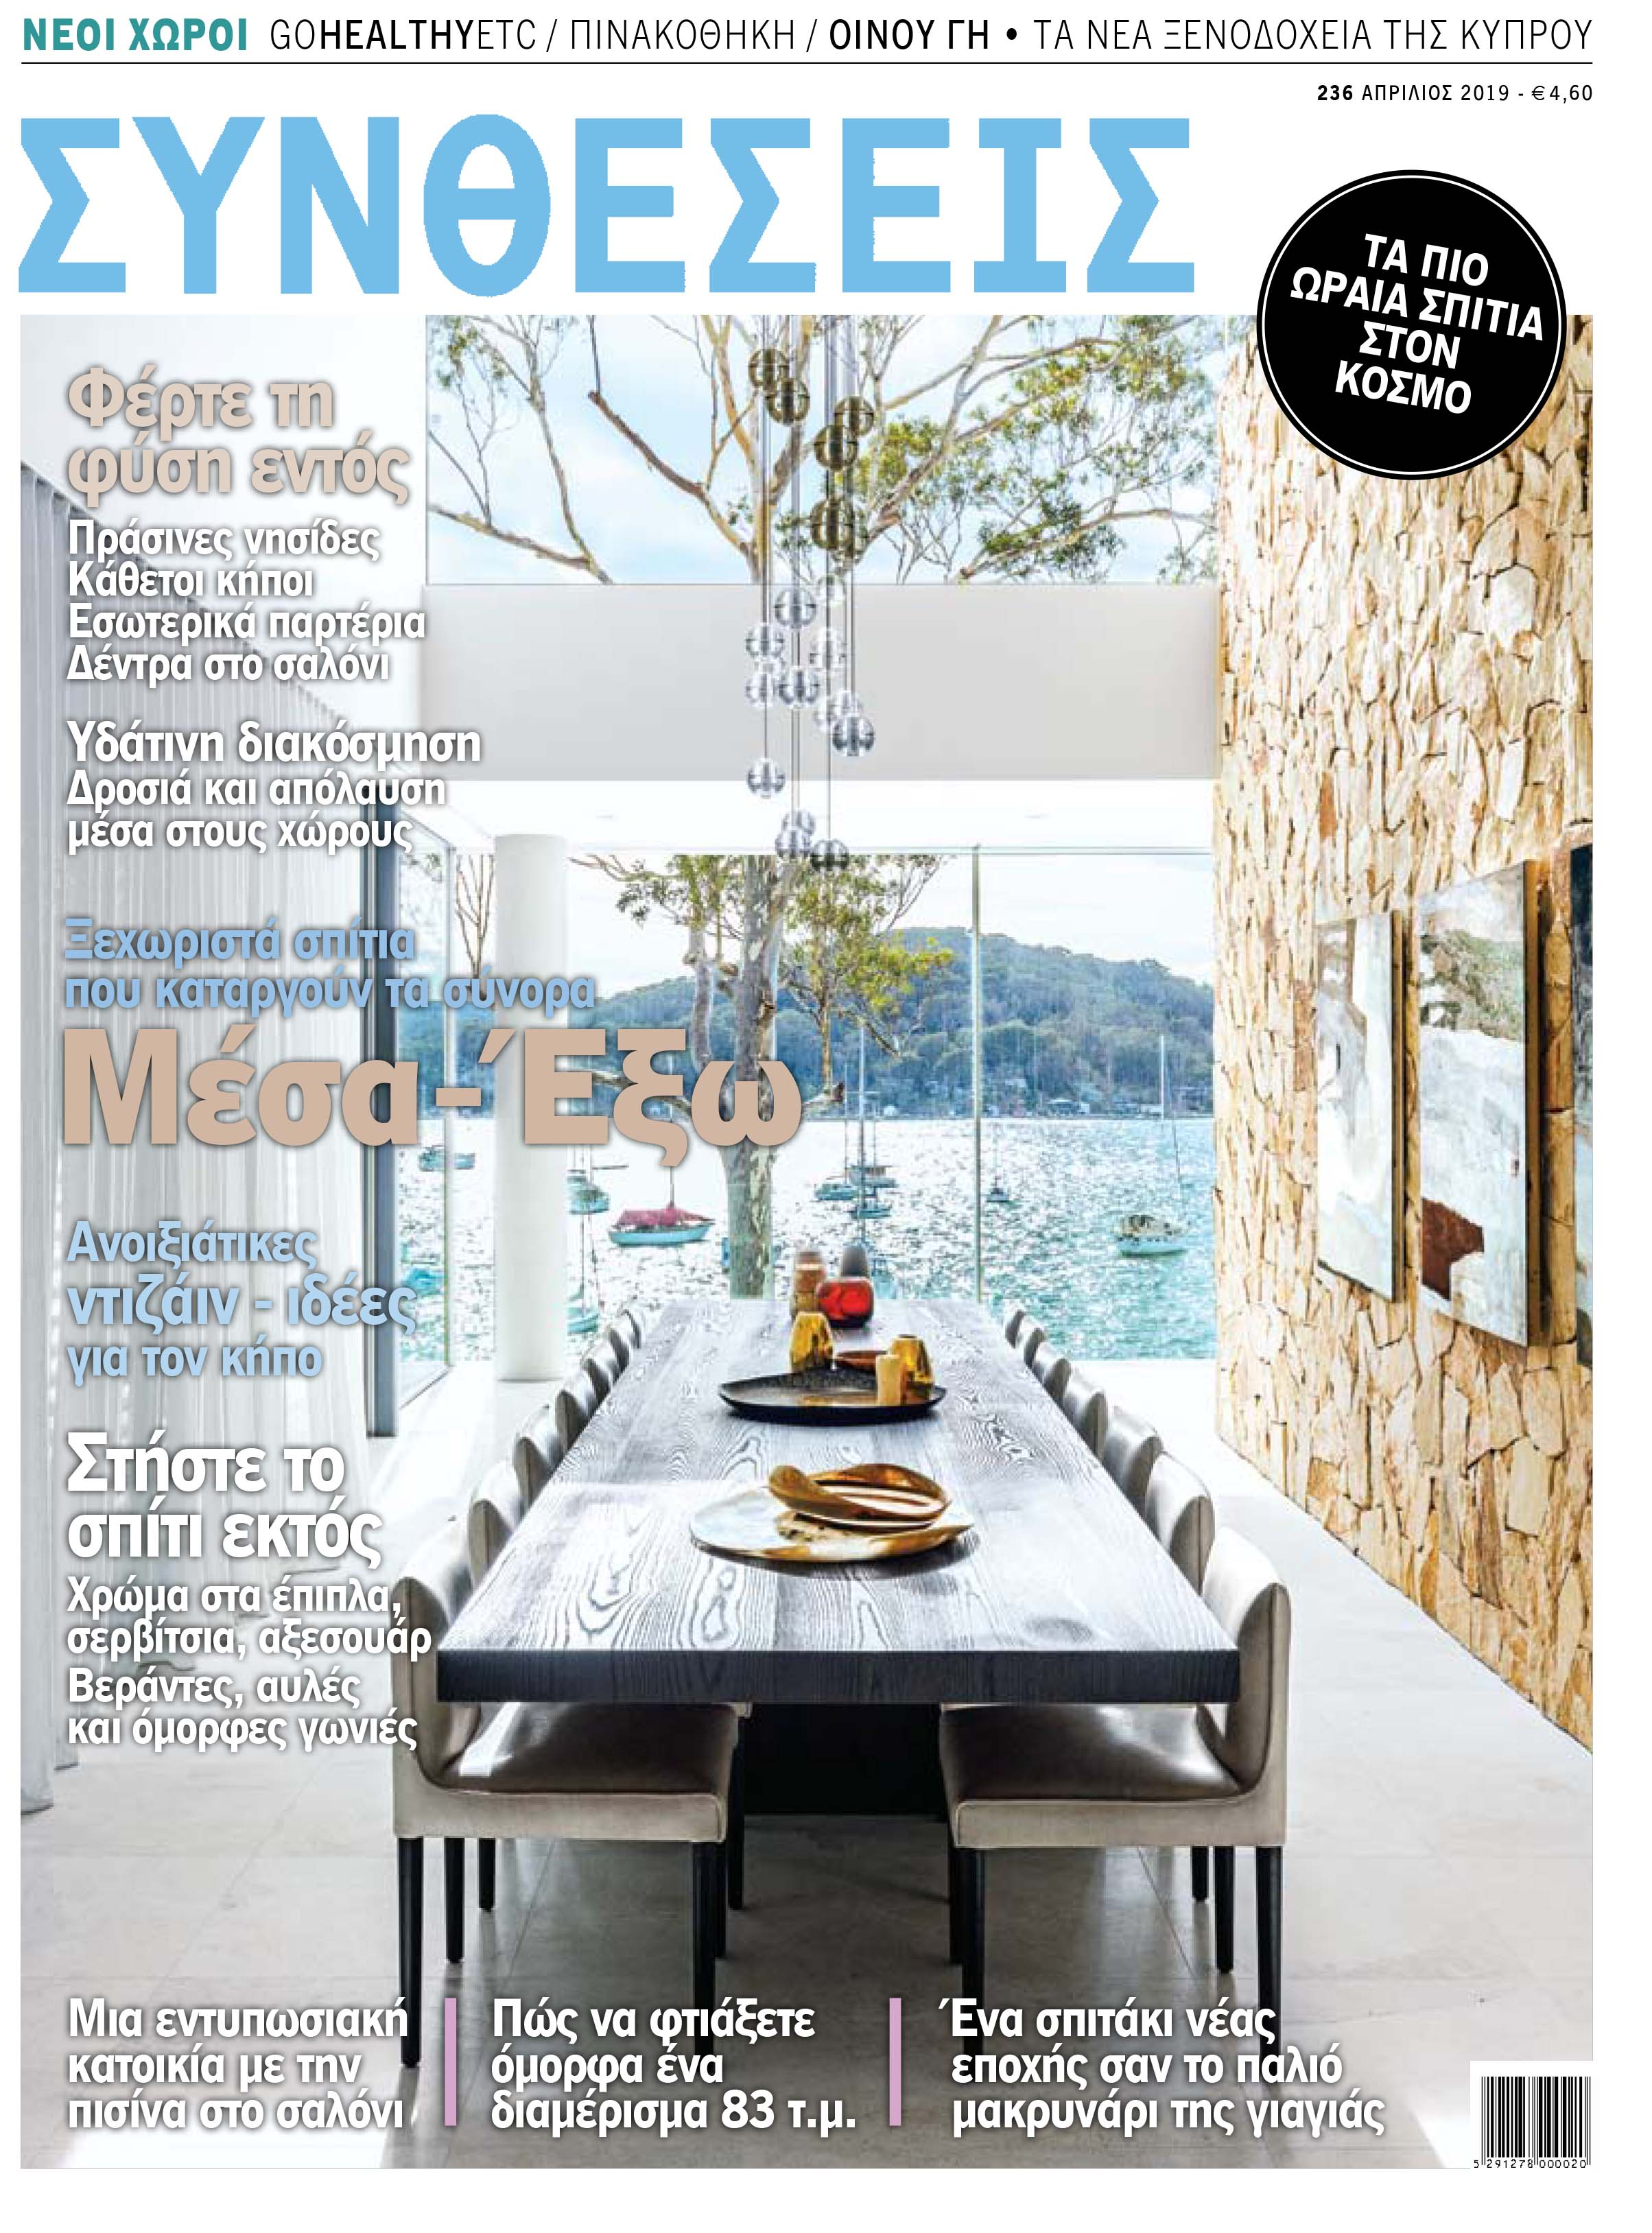 RESIDENCE IN THE SUBURBS    SYNTHESEIS  / APR 2019